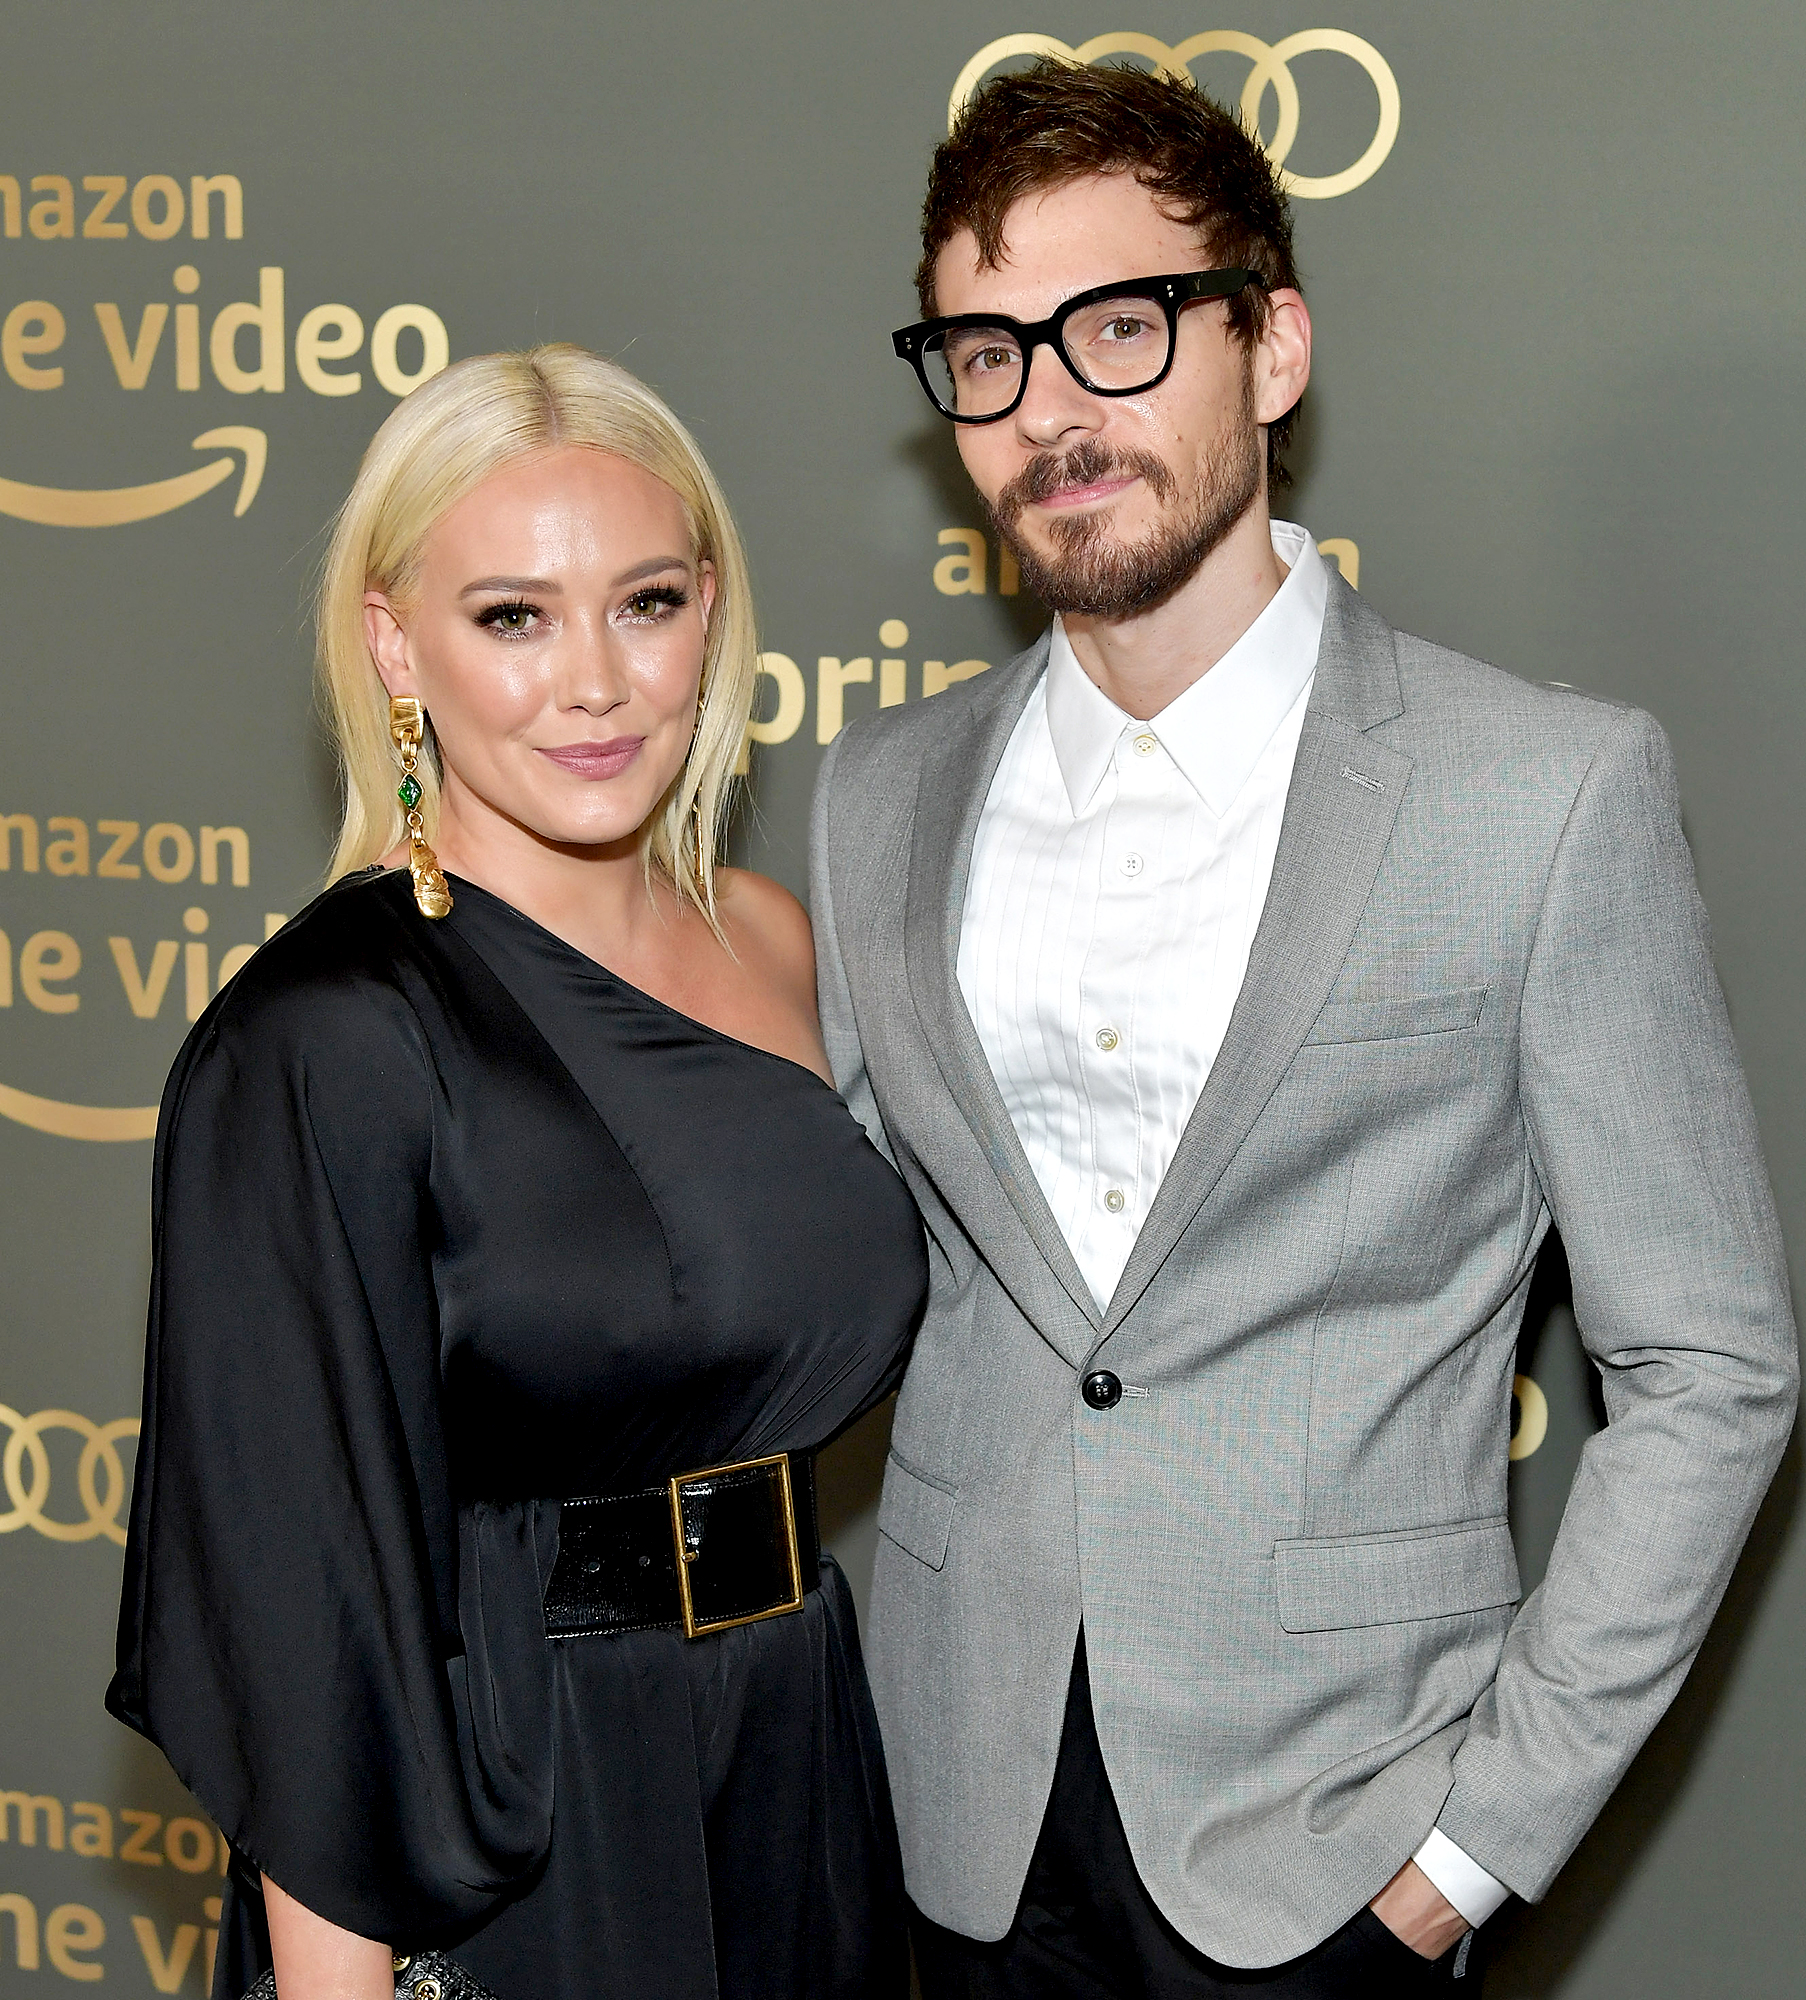 Police-Respond-to-Hilary-Duff-and-Matthew-Koma's-Beverly-Hills-Home-Trespasses - Hilary Duff and Matthew Koma attend a Golden Globe Awards afterparty at The Beverly Hilton in Beverly Hills on January 6, 2019.